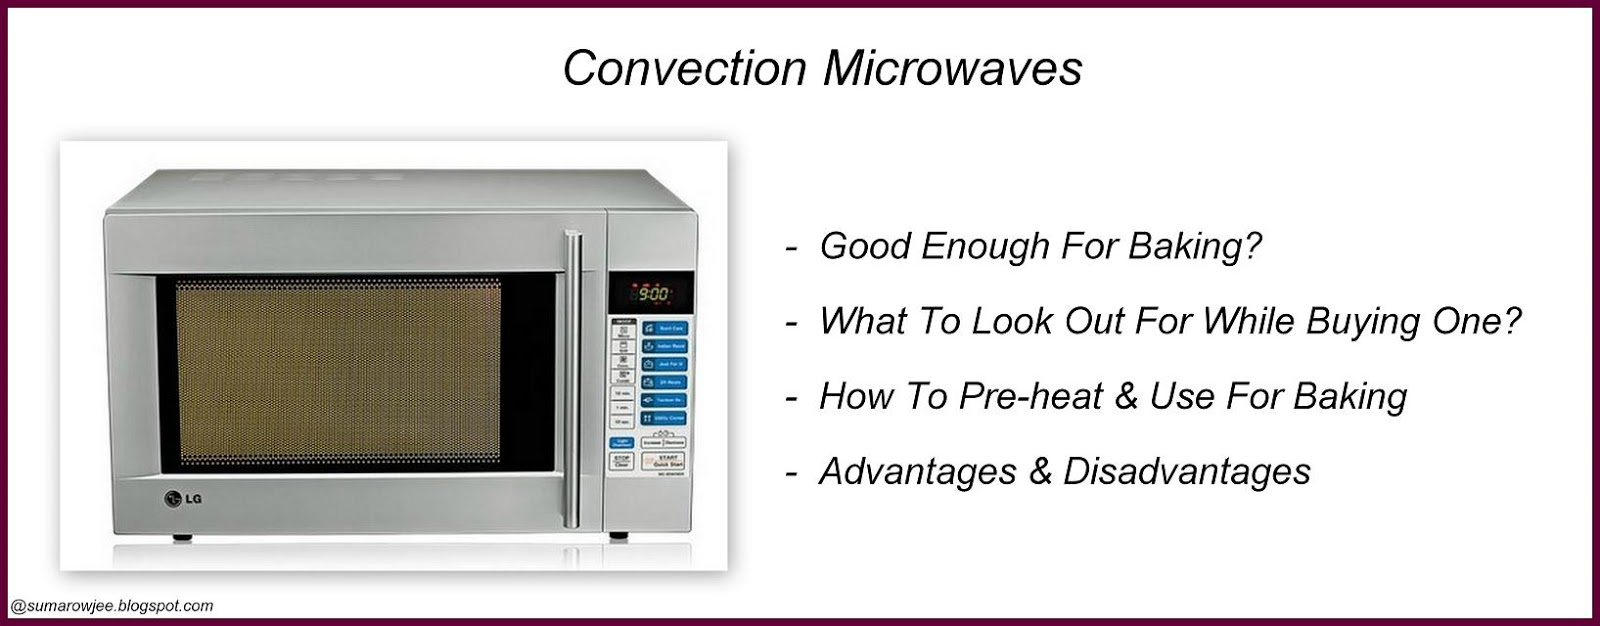 Cakes More How To Use A Convection Microwave For Baking How To